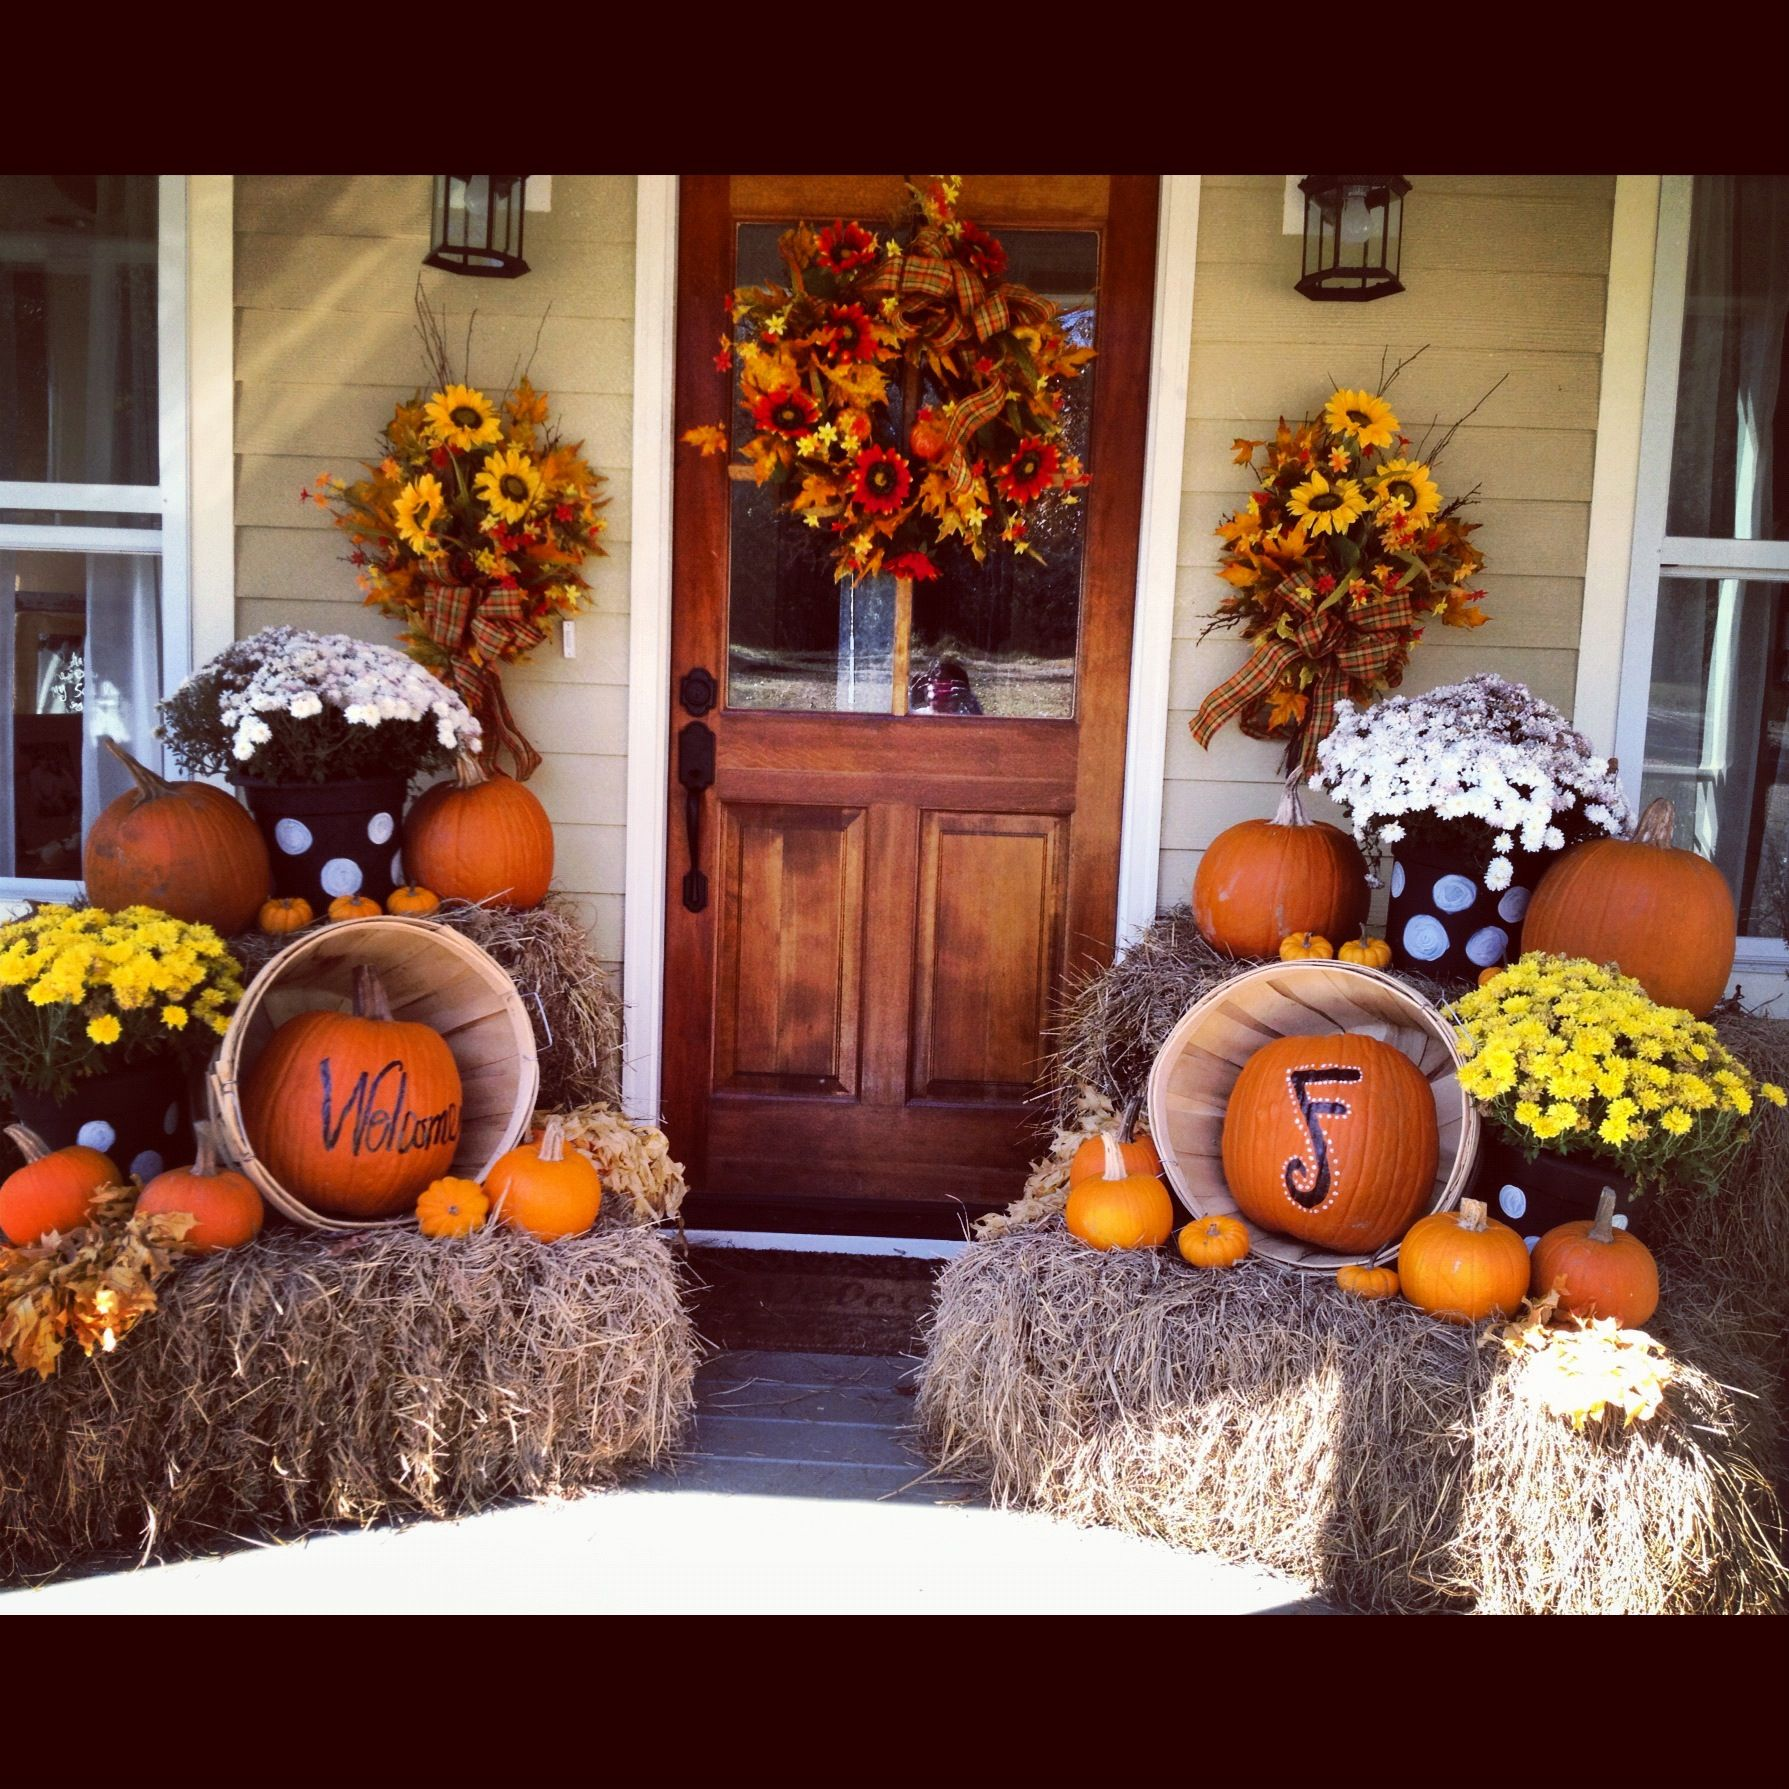 Best 25 mums and pumpkins ideas on pinterest mums in Fall outdoor decorating with pumpkins